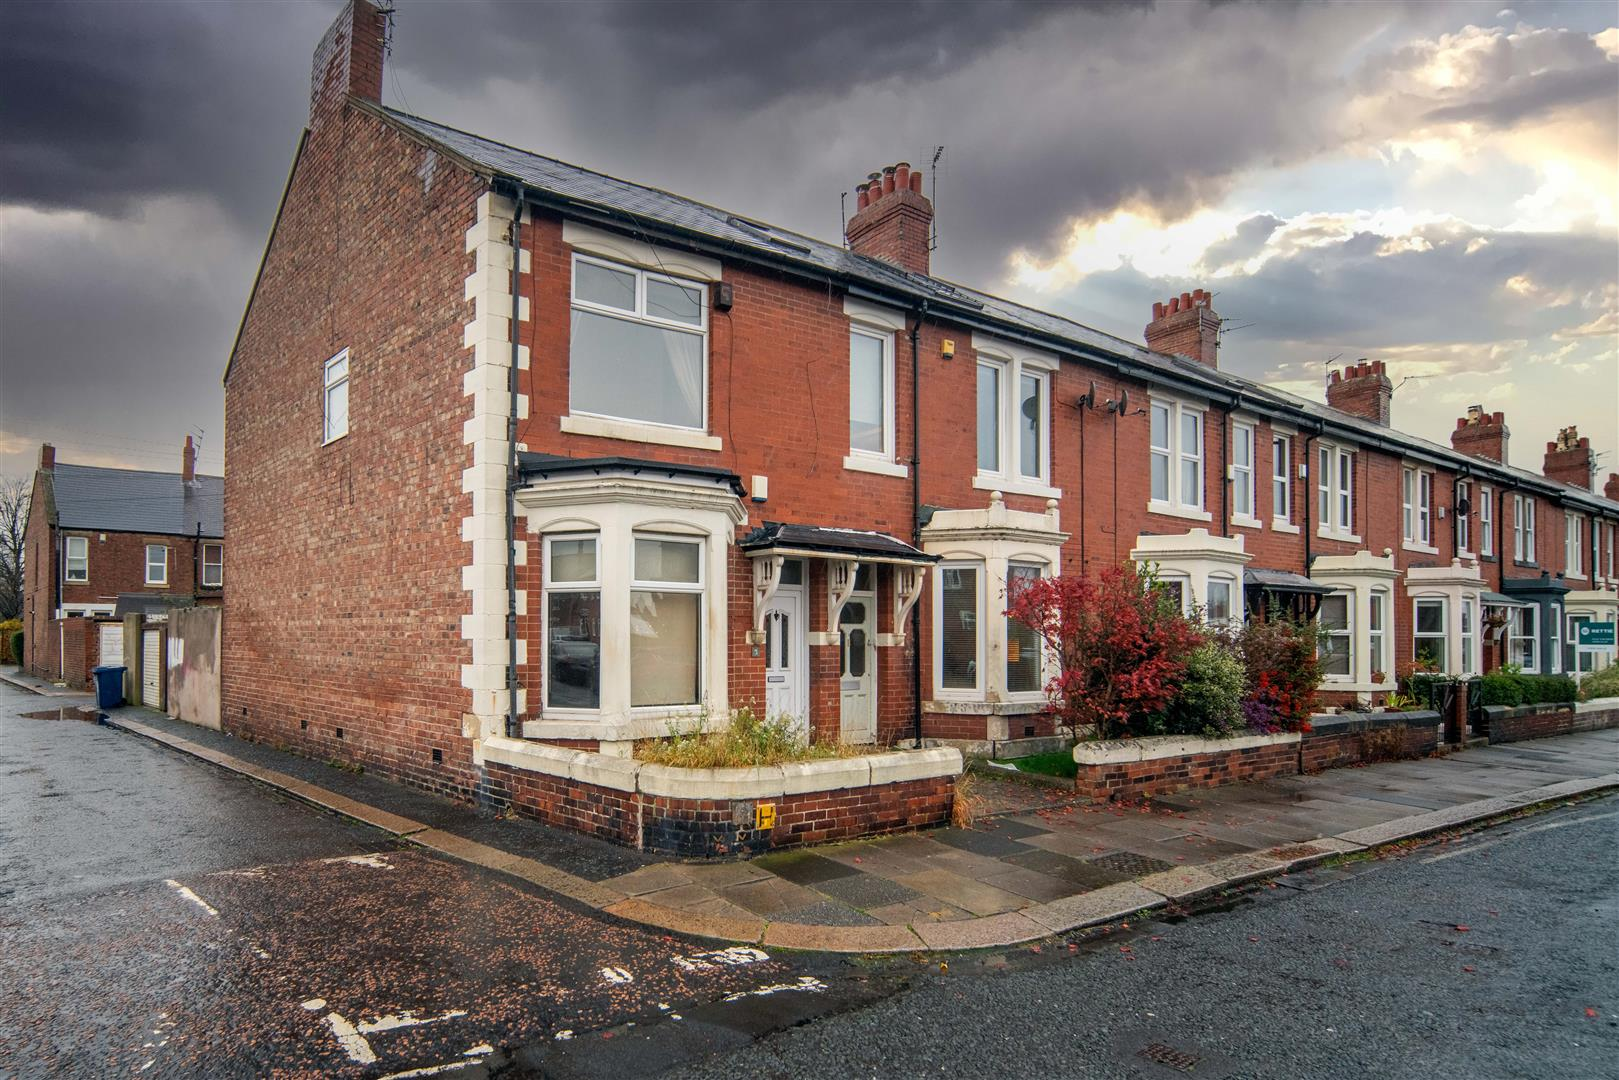 4 bed end of terrace house for sale in Heaton, NE6 5SY 0